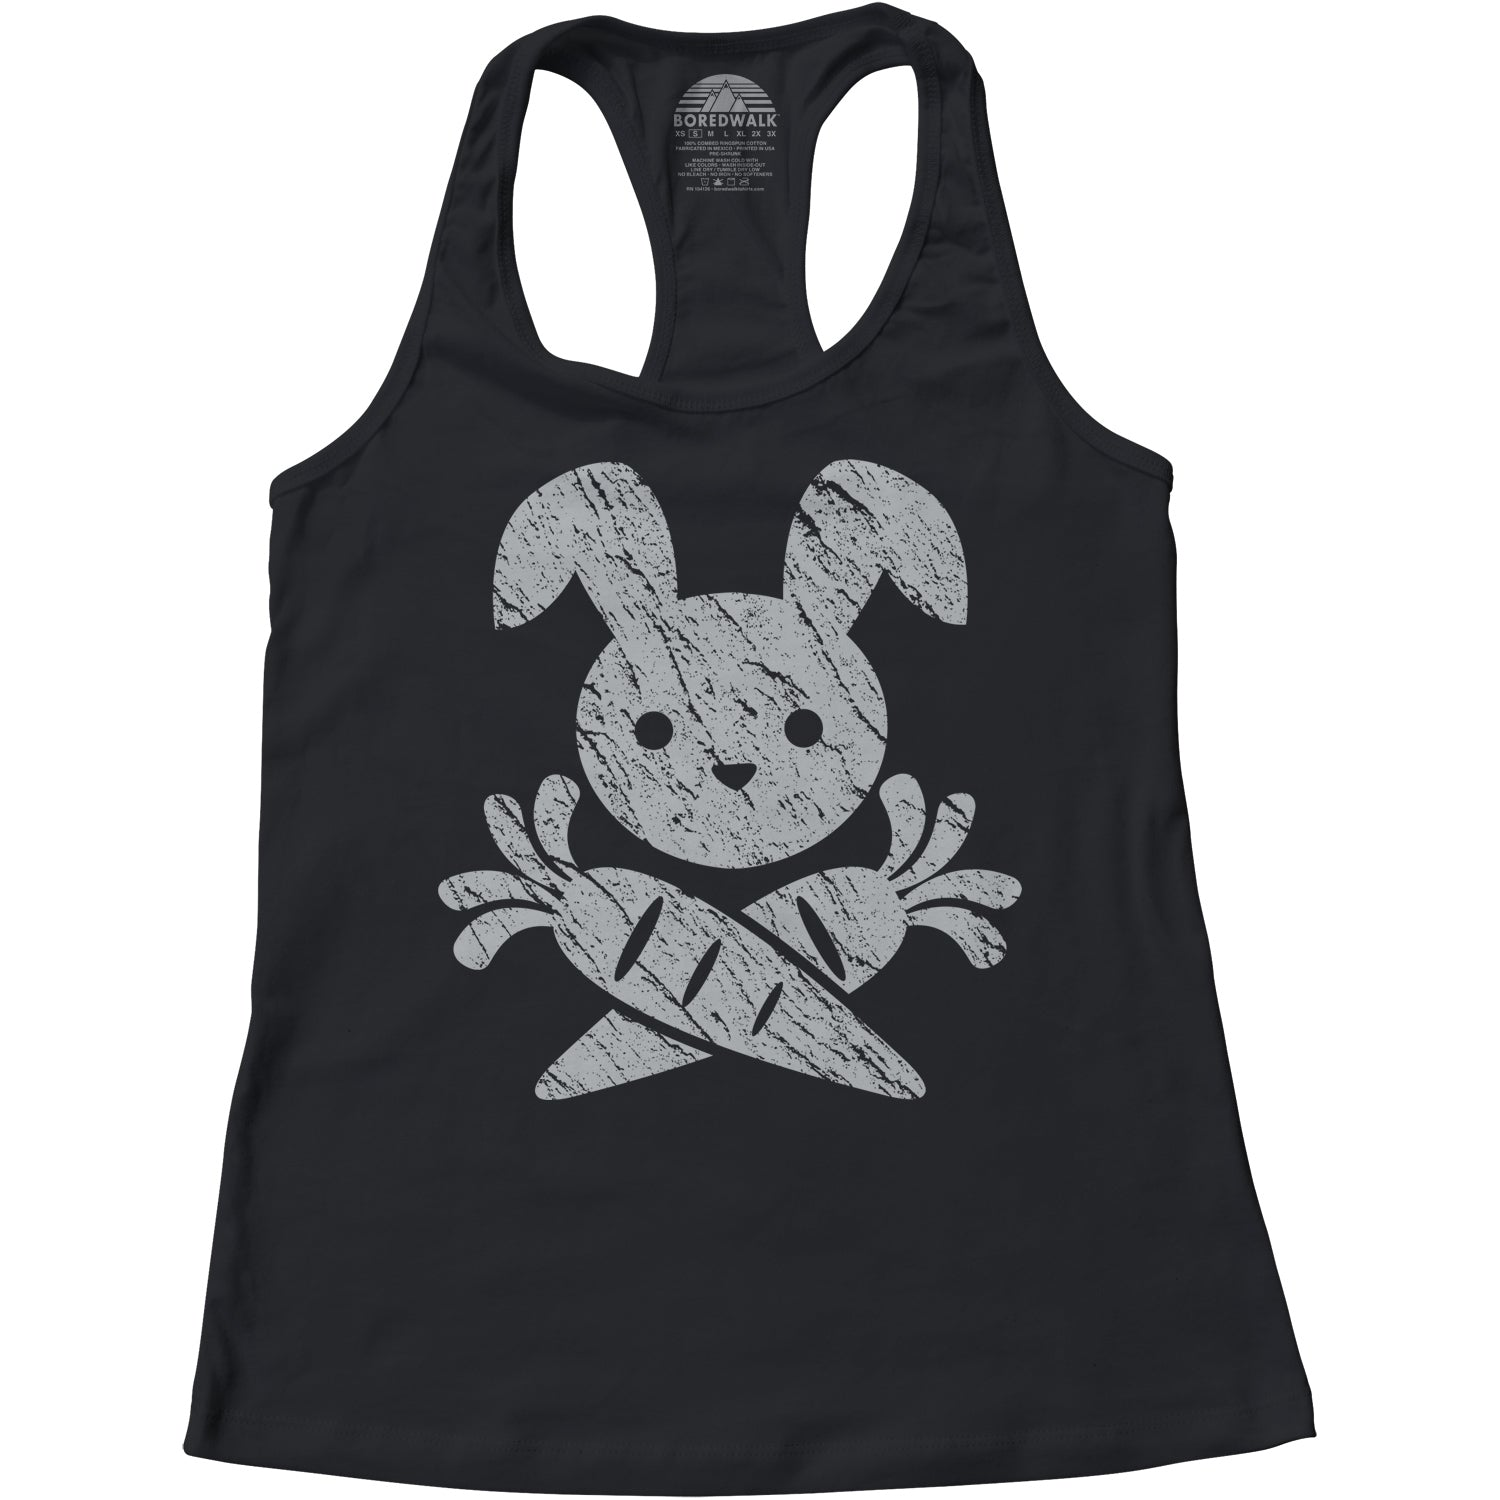 Women's Jolly Roger Bunny Racerback Tank Top